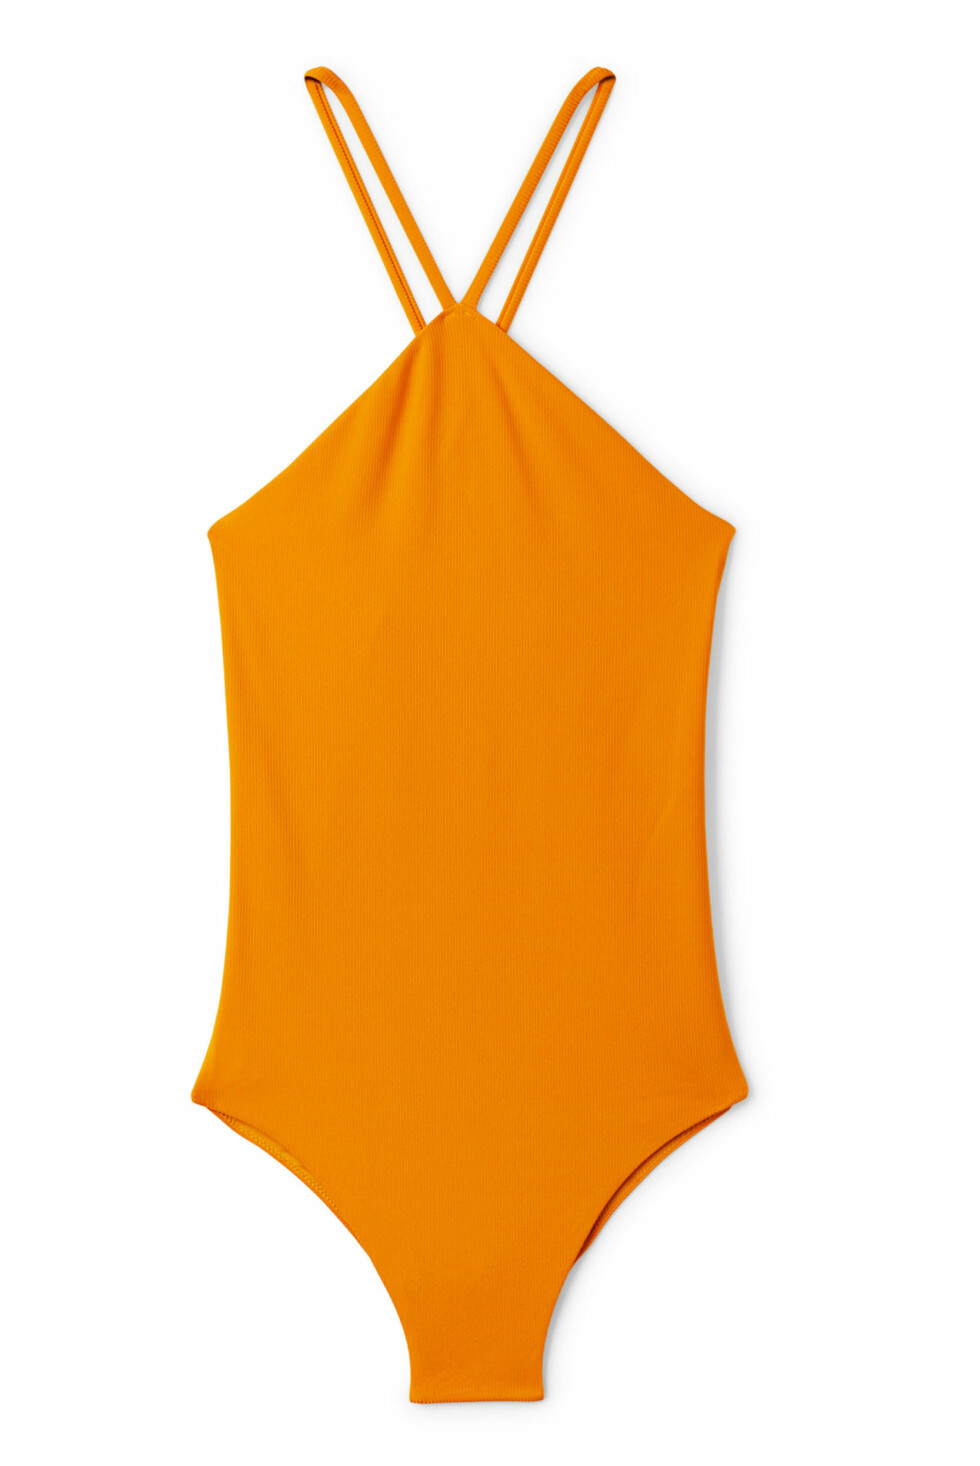 Badedrakt fra Weekday |250,-| https://www.weekday.com/en_sek/women/categories/new-arrivals/_jcr_content/subdepartmentPar/productlisting_86054396.products/product.halley-swimsuit-yellow.0573973001.html